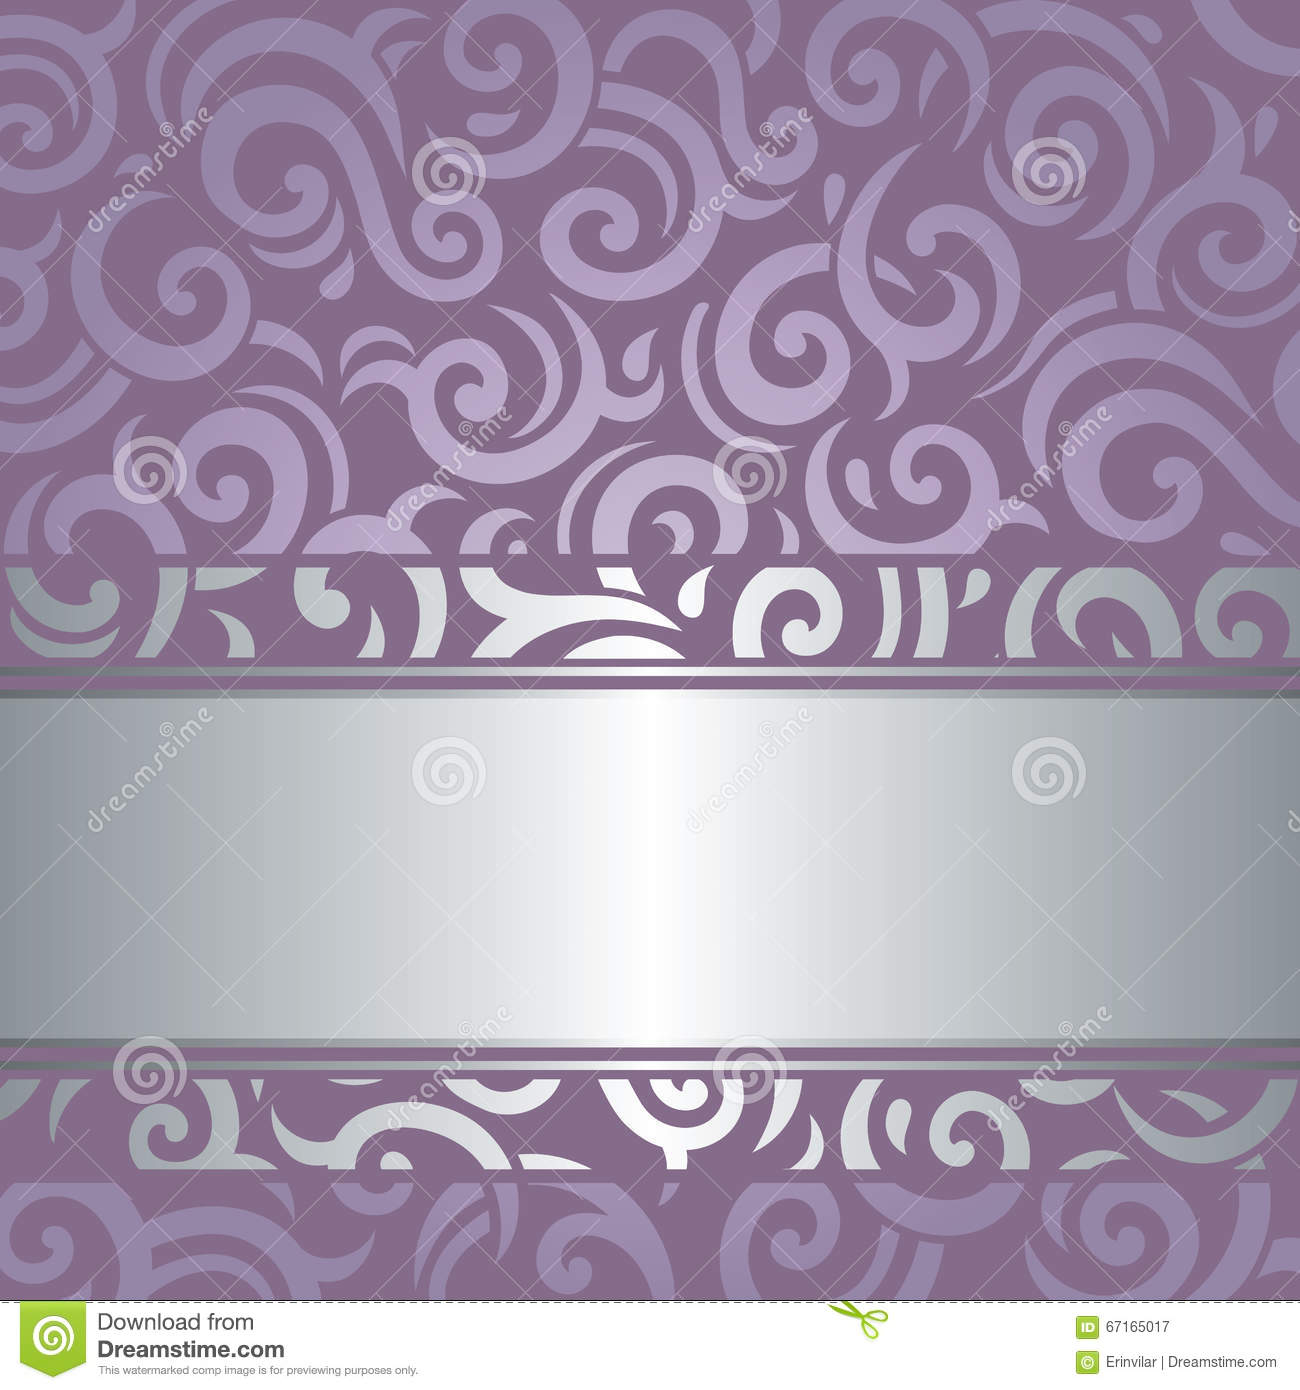 lavender violet vector background wedding luxury vintage design illustration 67165017 megapixl megapixl